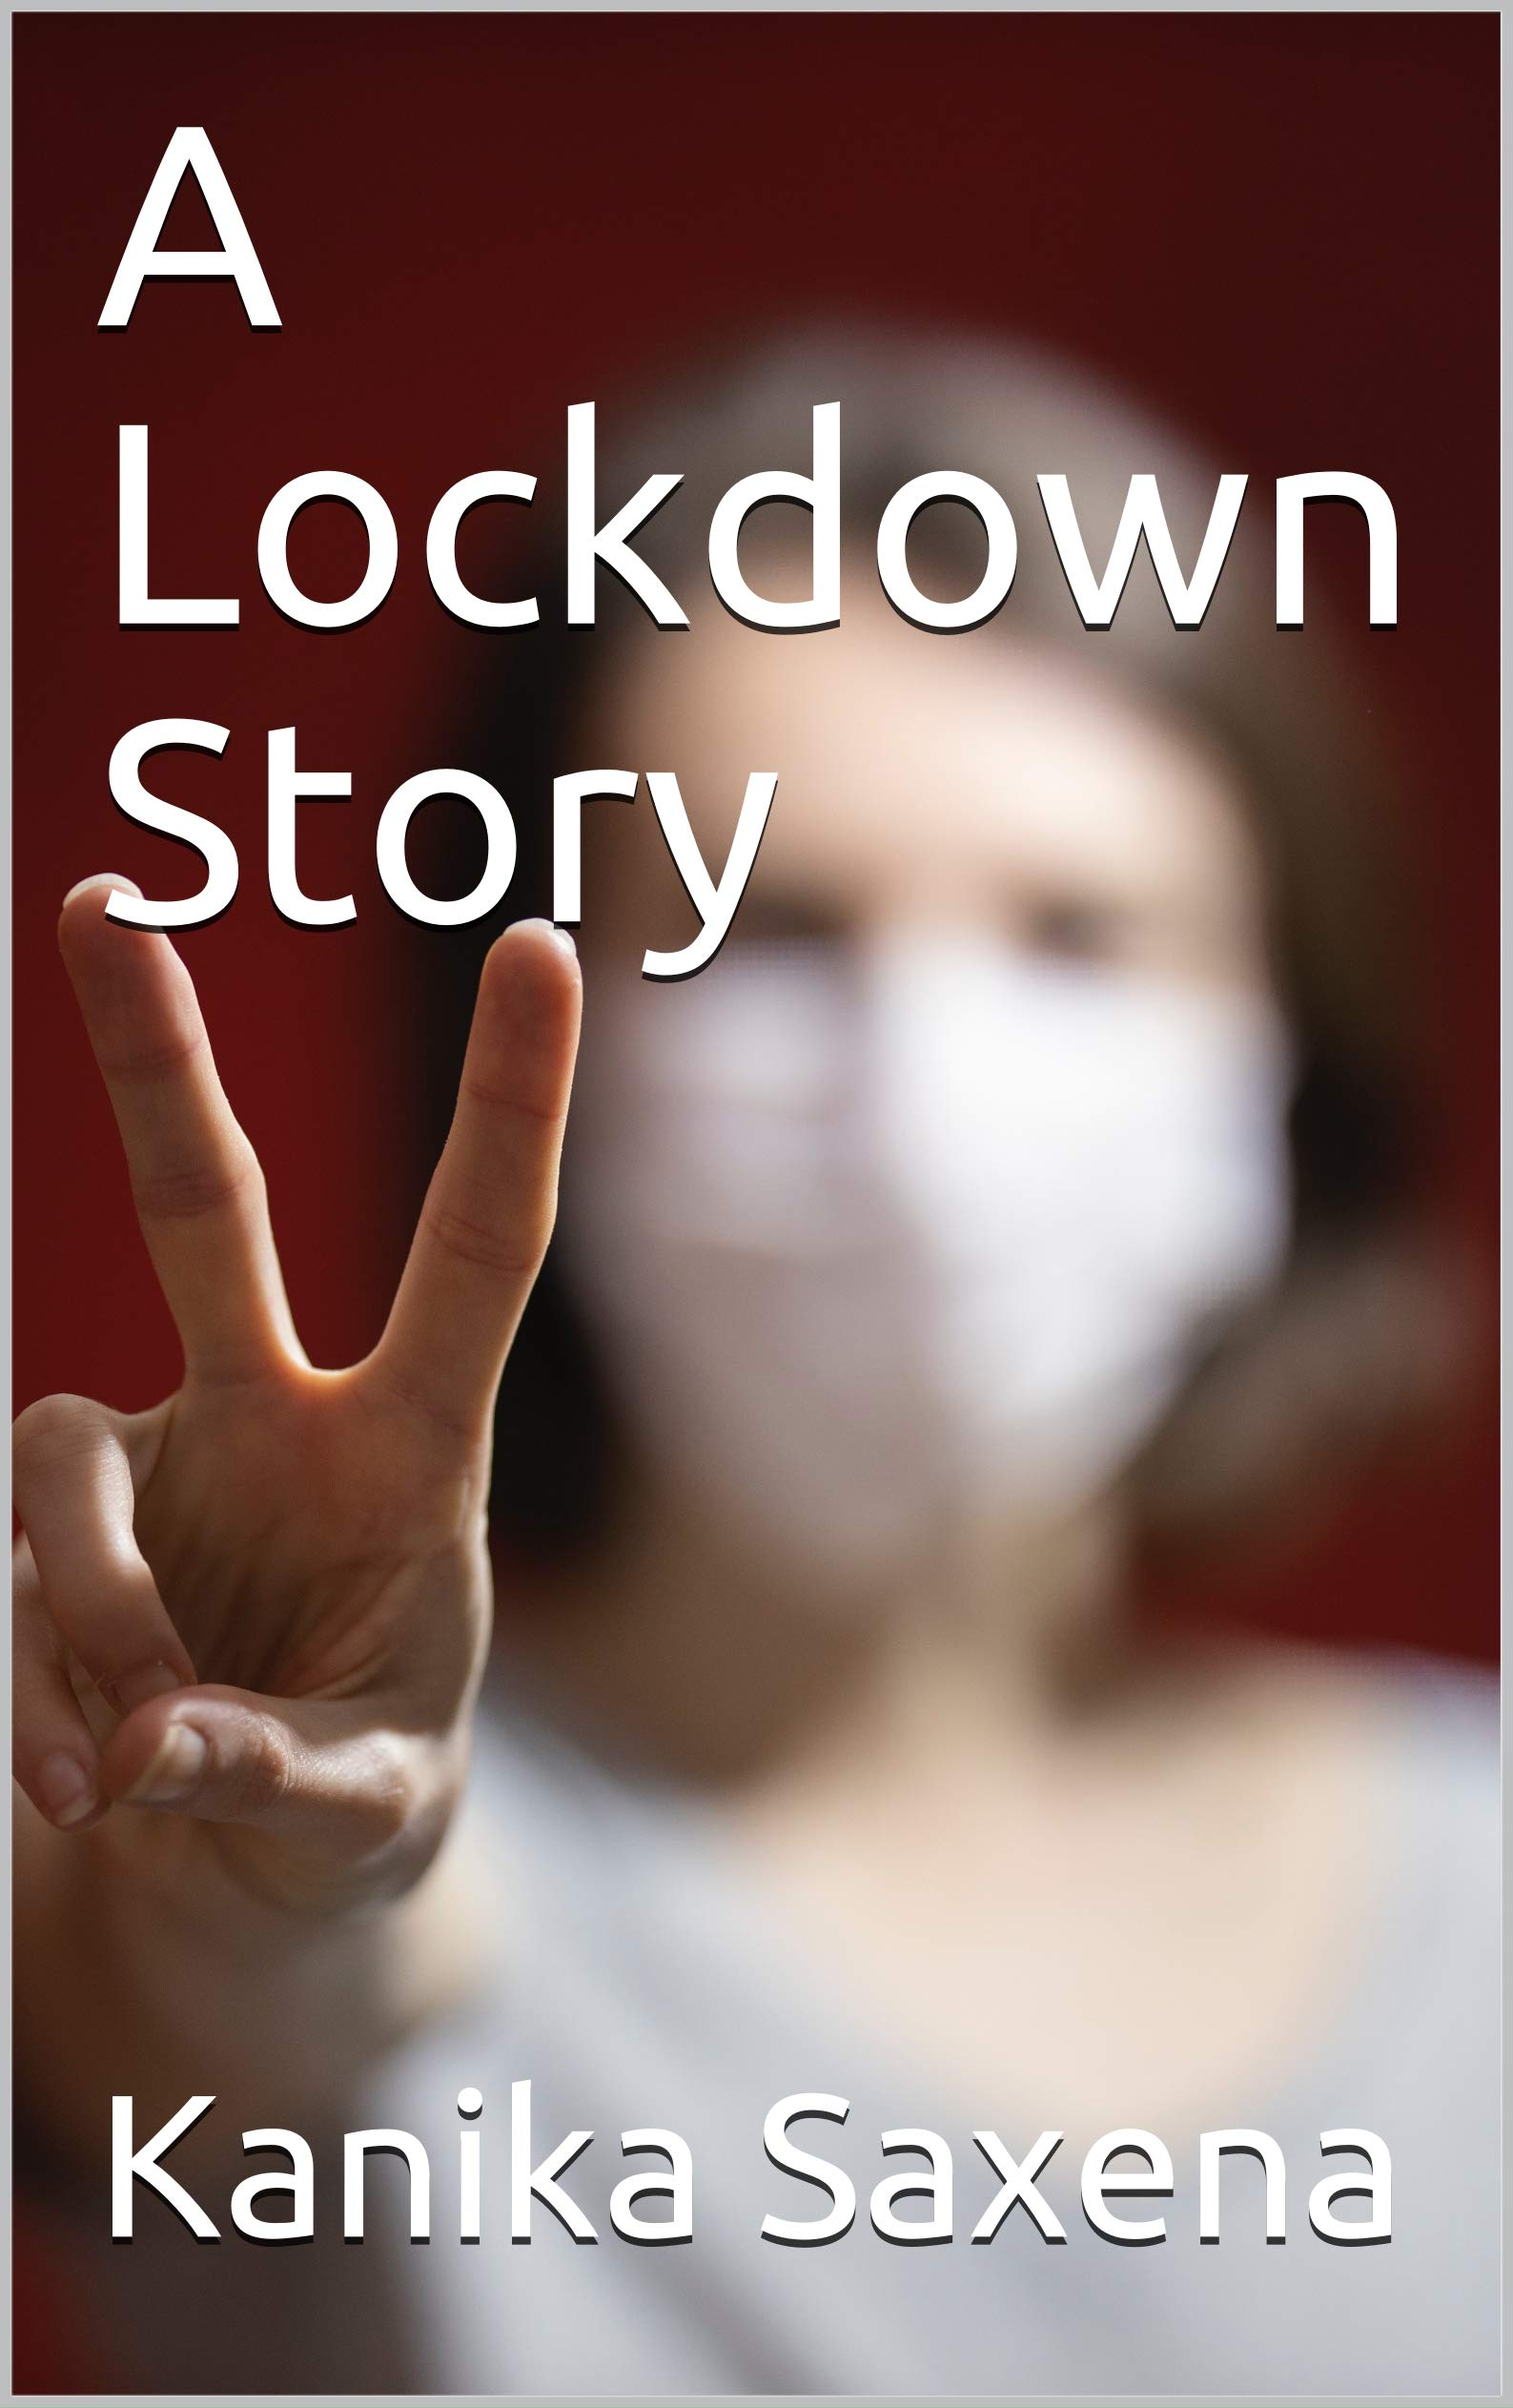 A Lockdown Story: How to Use the Lockdown to your Advantage?